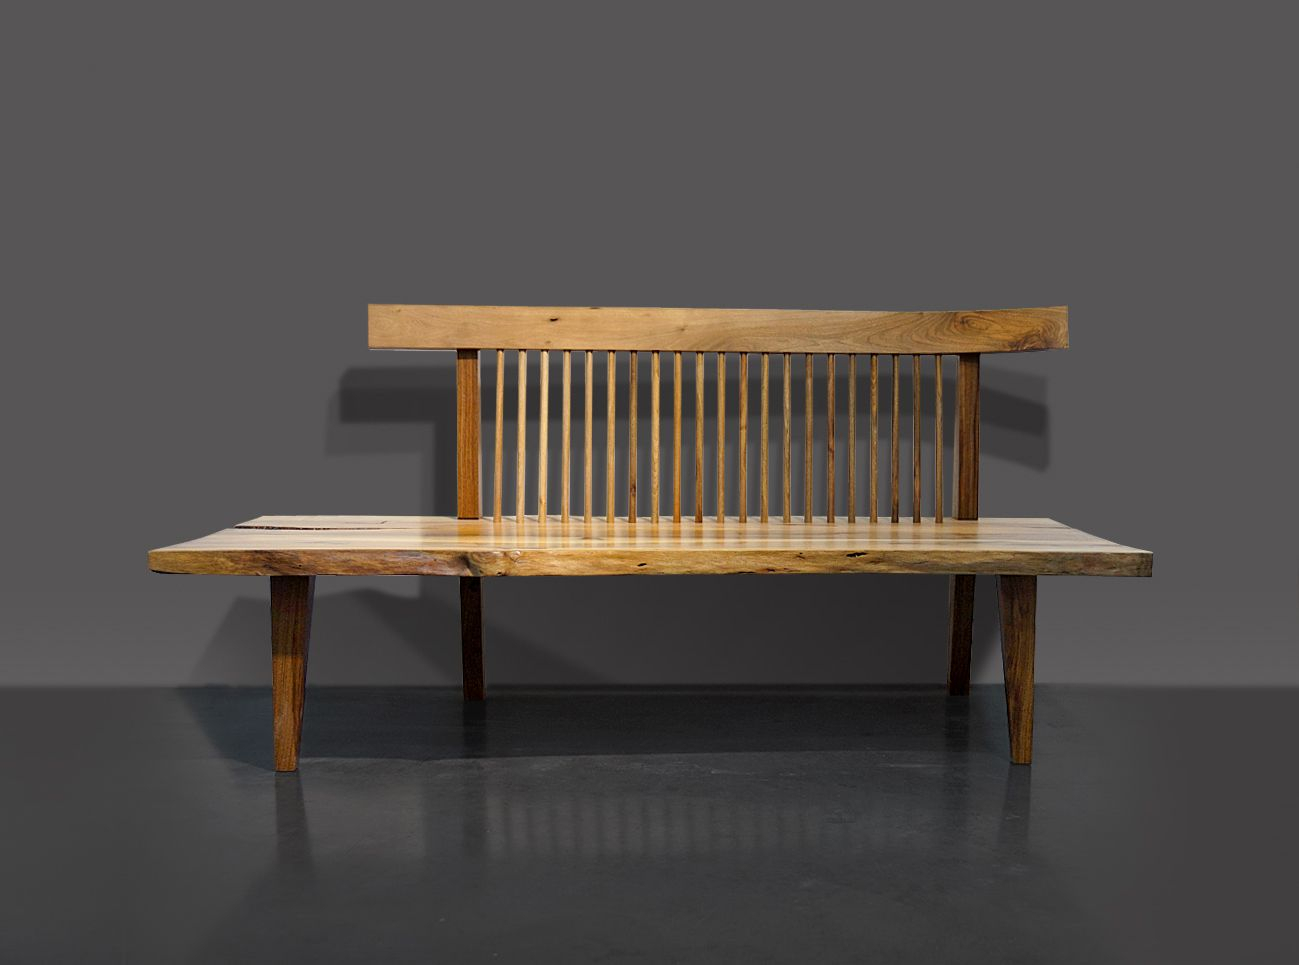 Bench Jpn 19 | Solid Walnut, Outdoor Furniture, Decor Throughout Walnut Solid Wood Garden Benches (View 2 of 25)